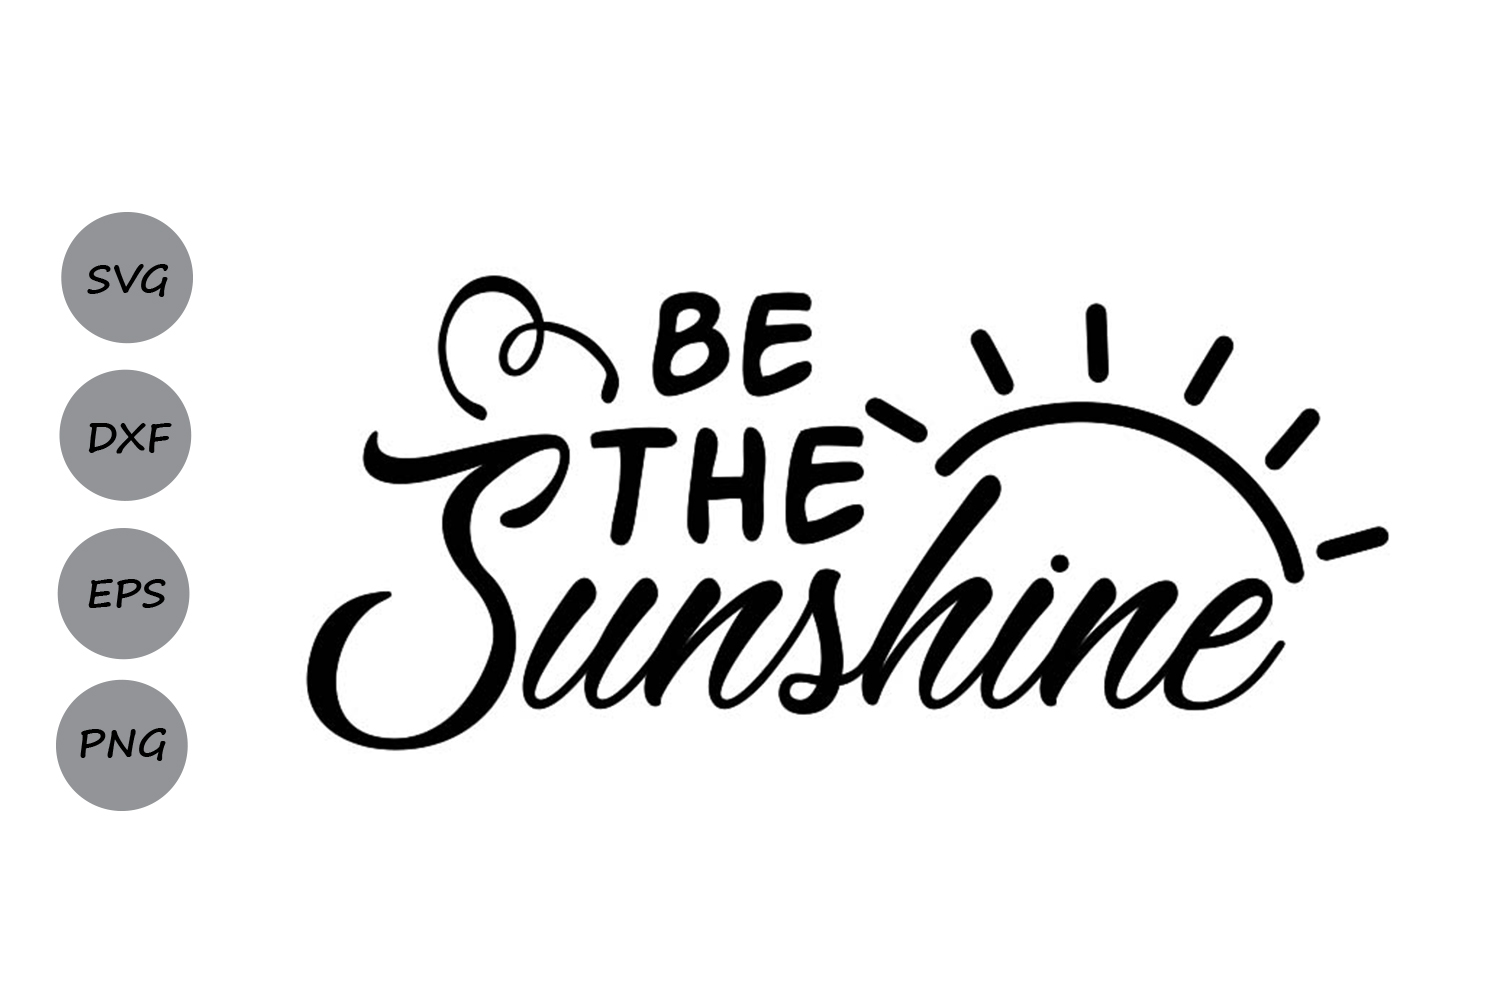 Download Free Be The Sunshine Svg Graphic By Cosmosfineart Creative Fabrica for Cricut Explore, Silhouette and other cutting machines.